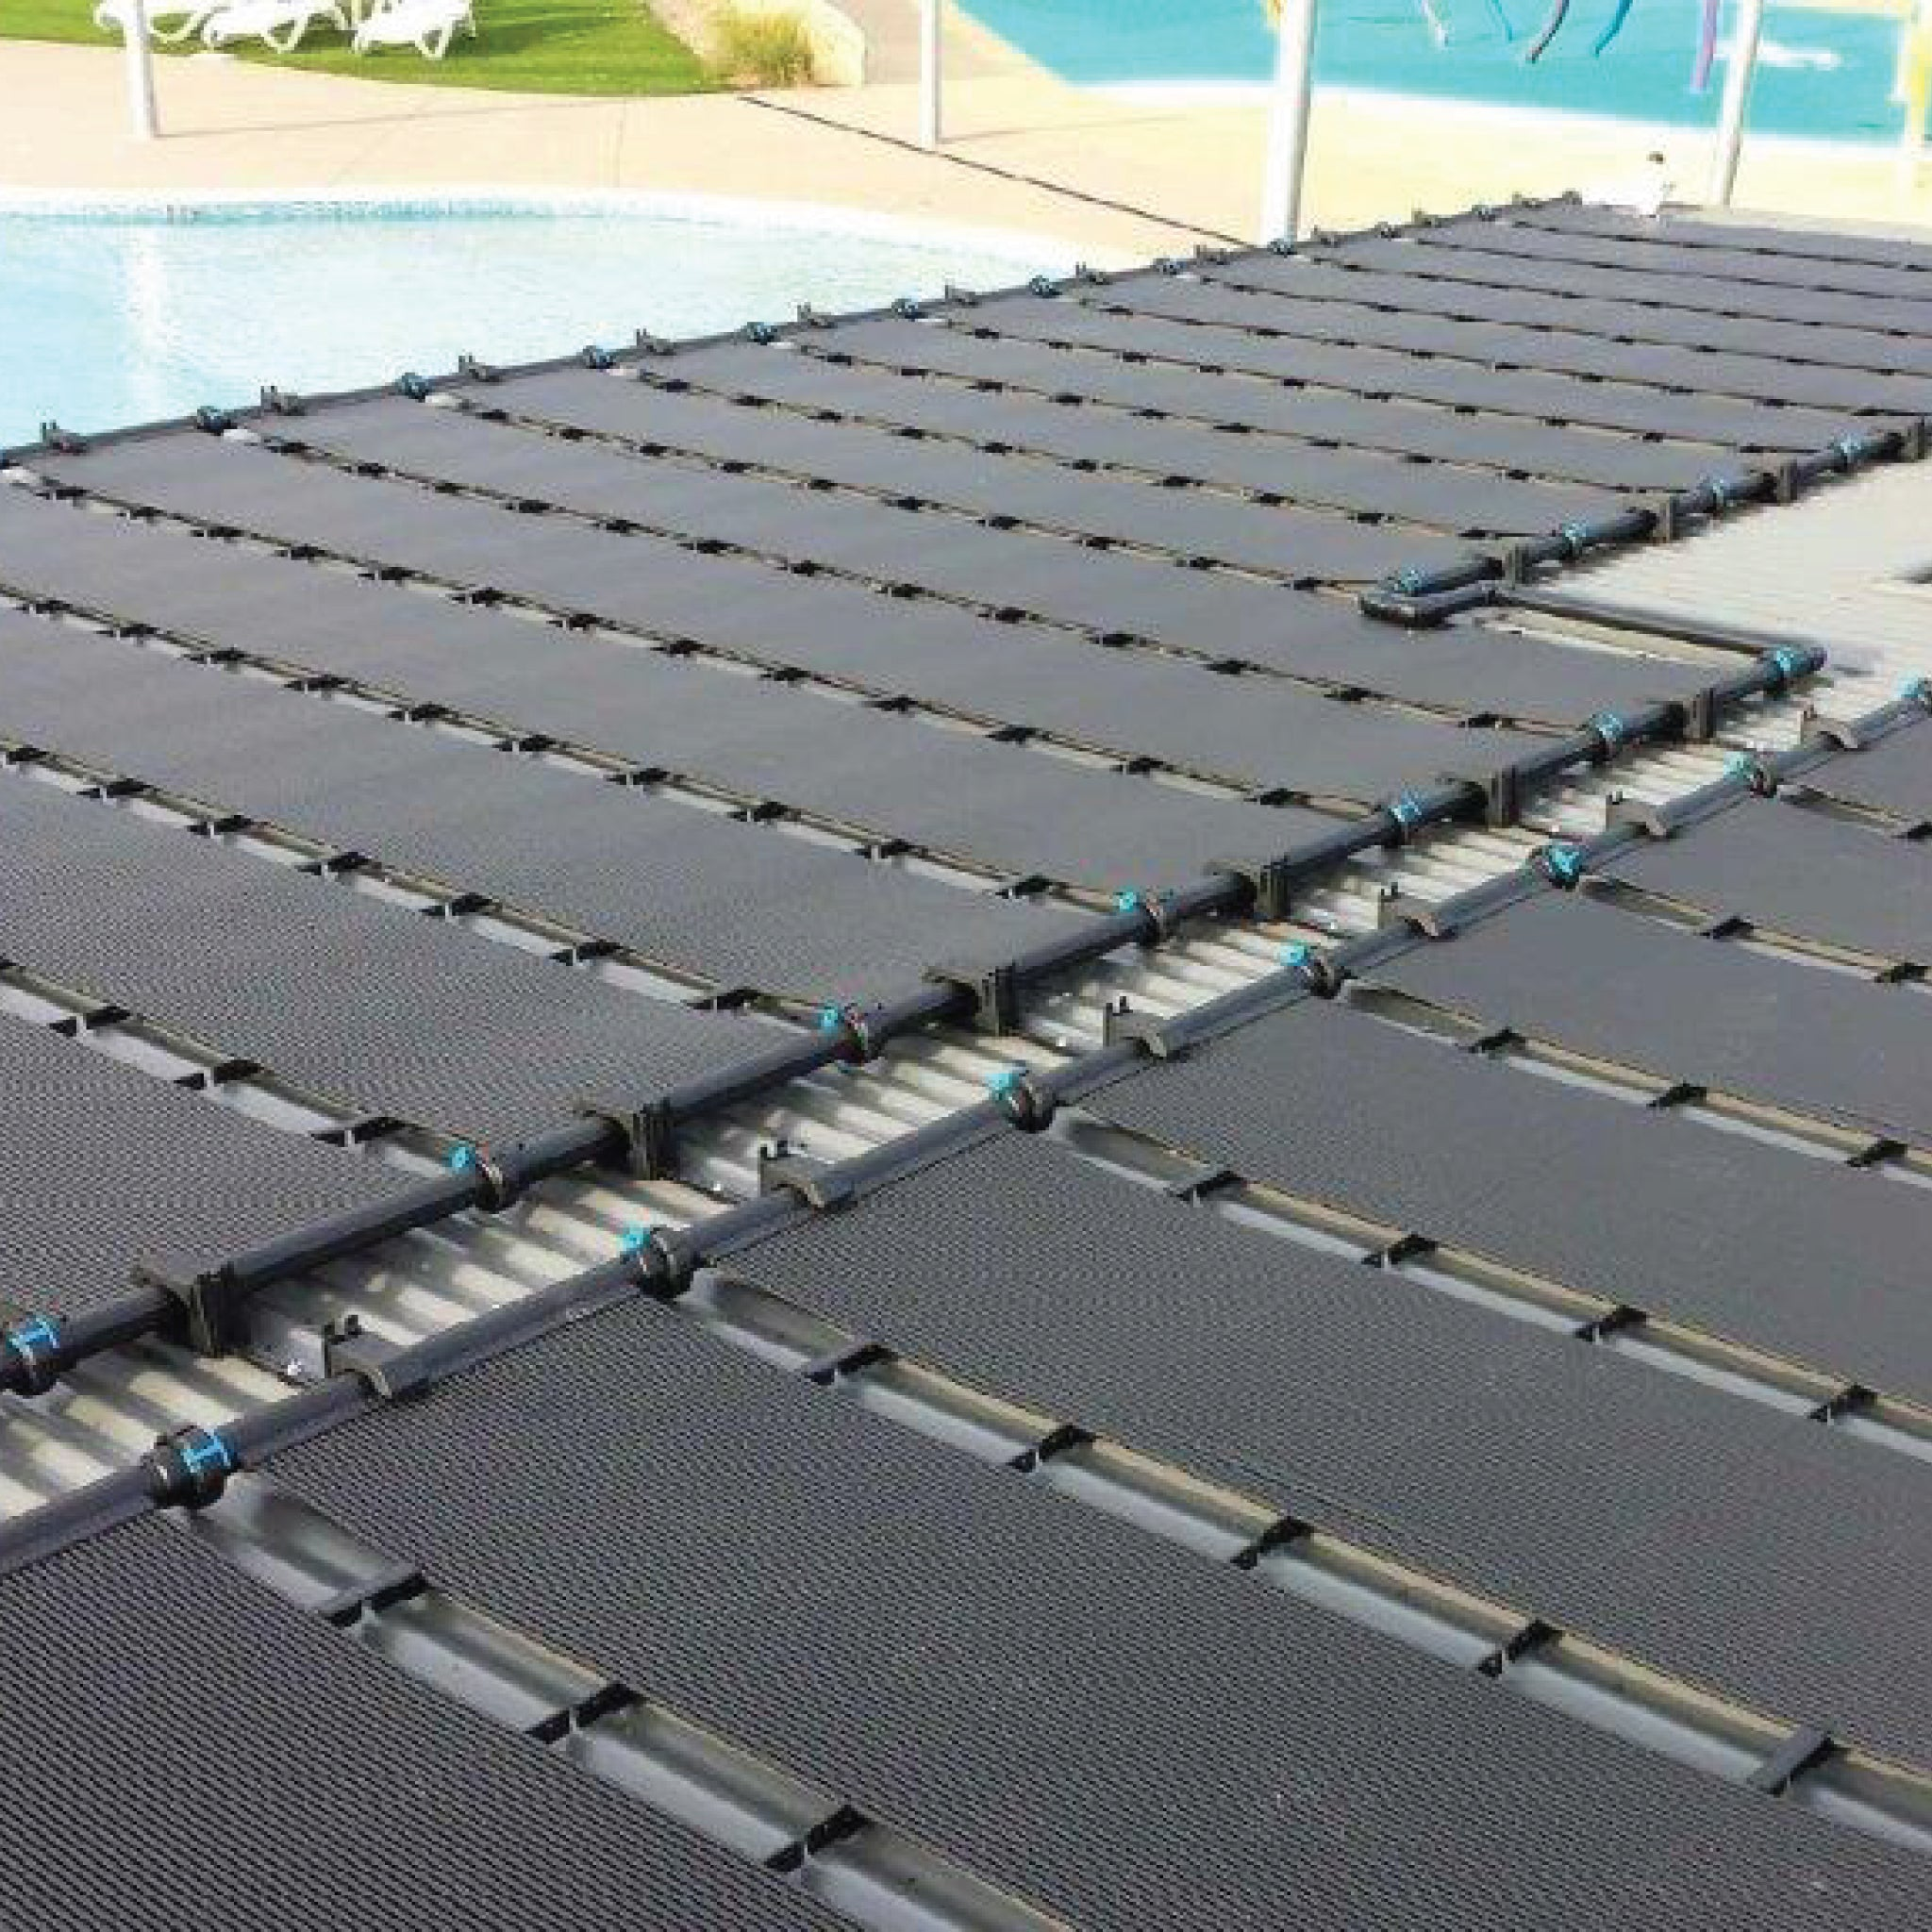 Suntube 2, Rigid solar pool heating panels